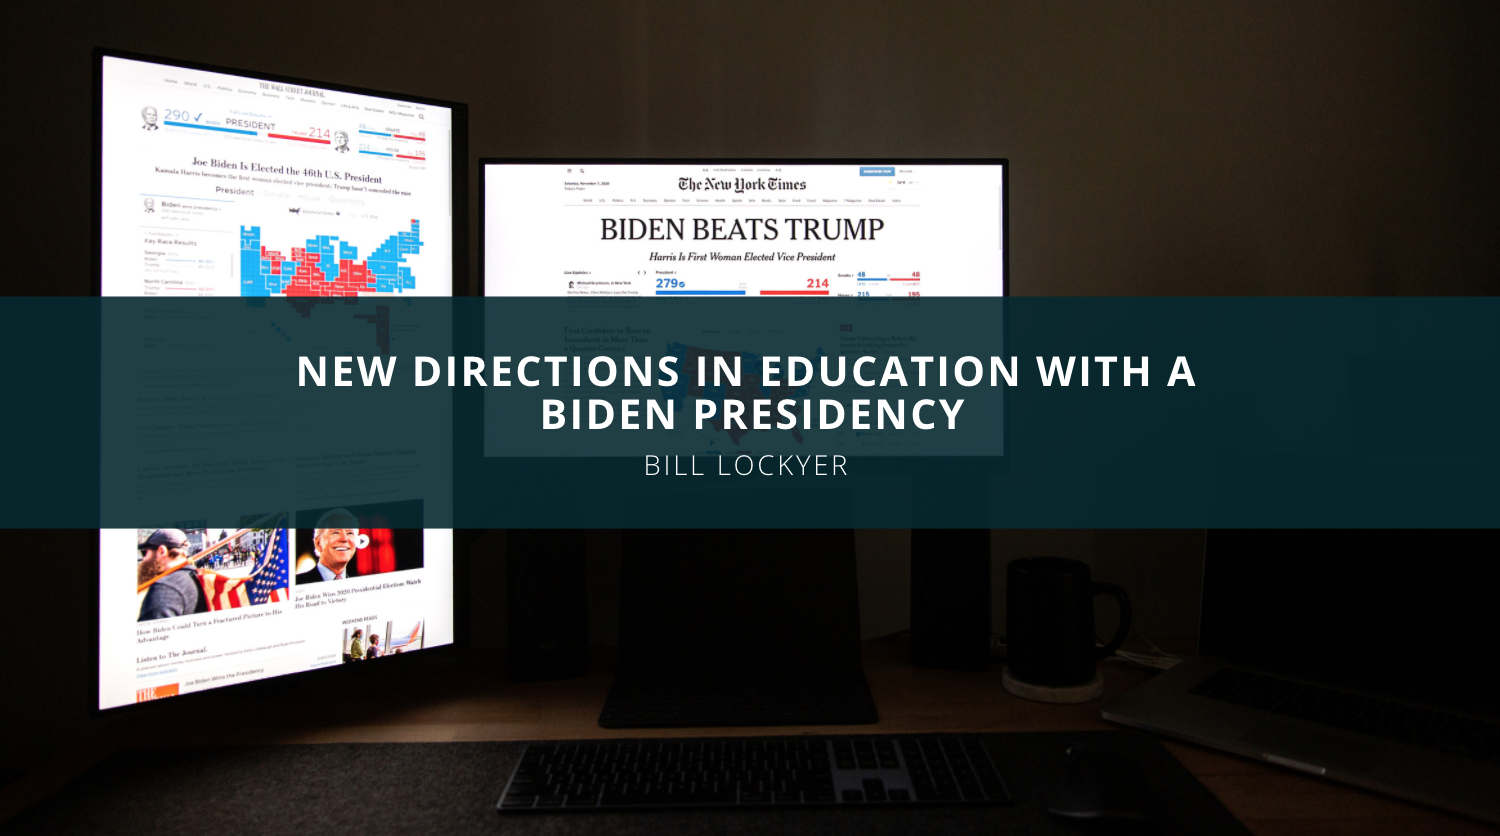 Bill Lockyer and New Directions in Education with a Biden Presidency